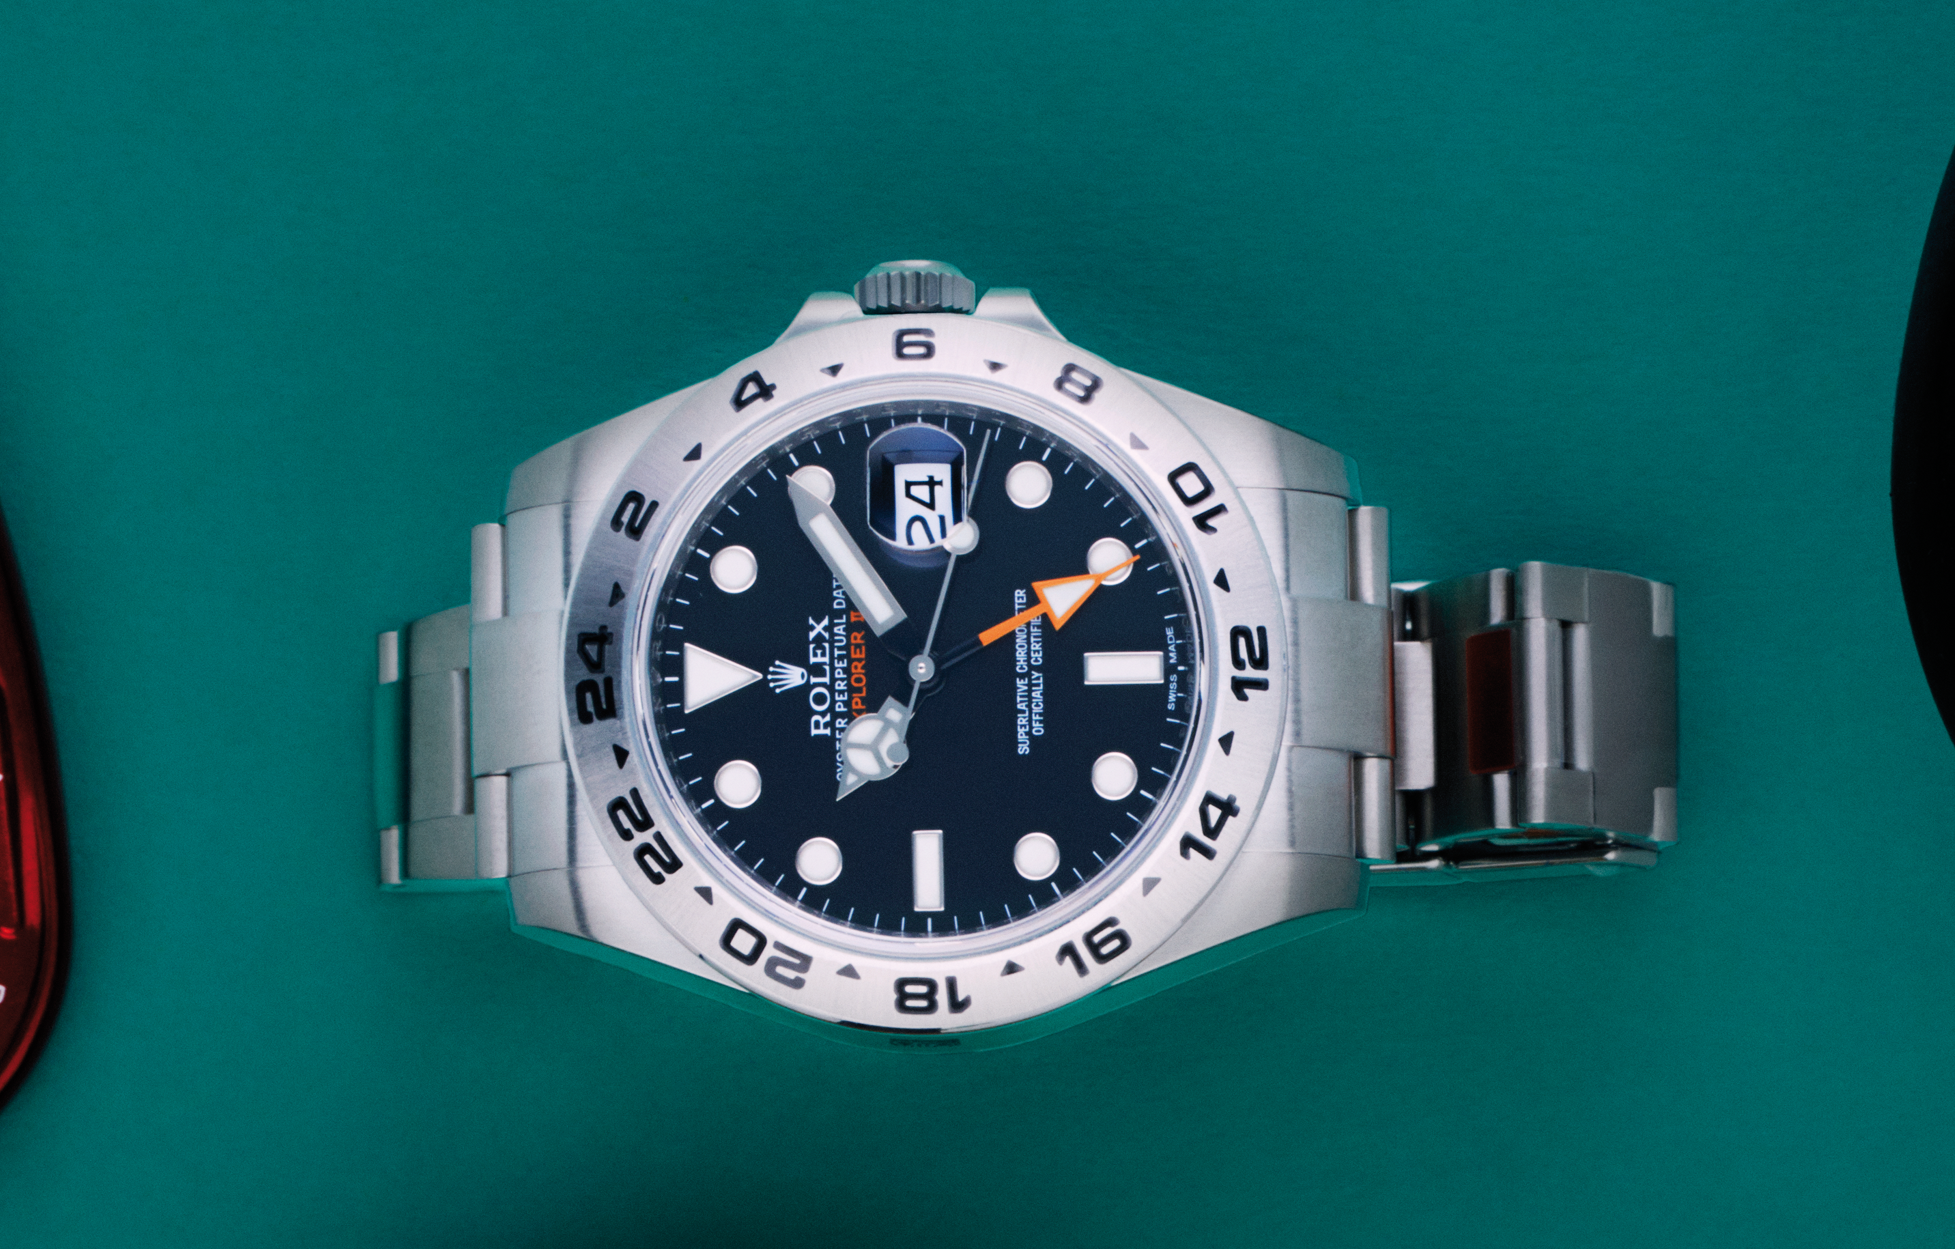 Rolex Explorer II in steel  with automatic movement,  price app. 9,700 USD, Nymans Ur 1851.